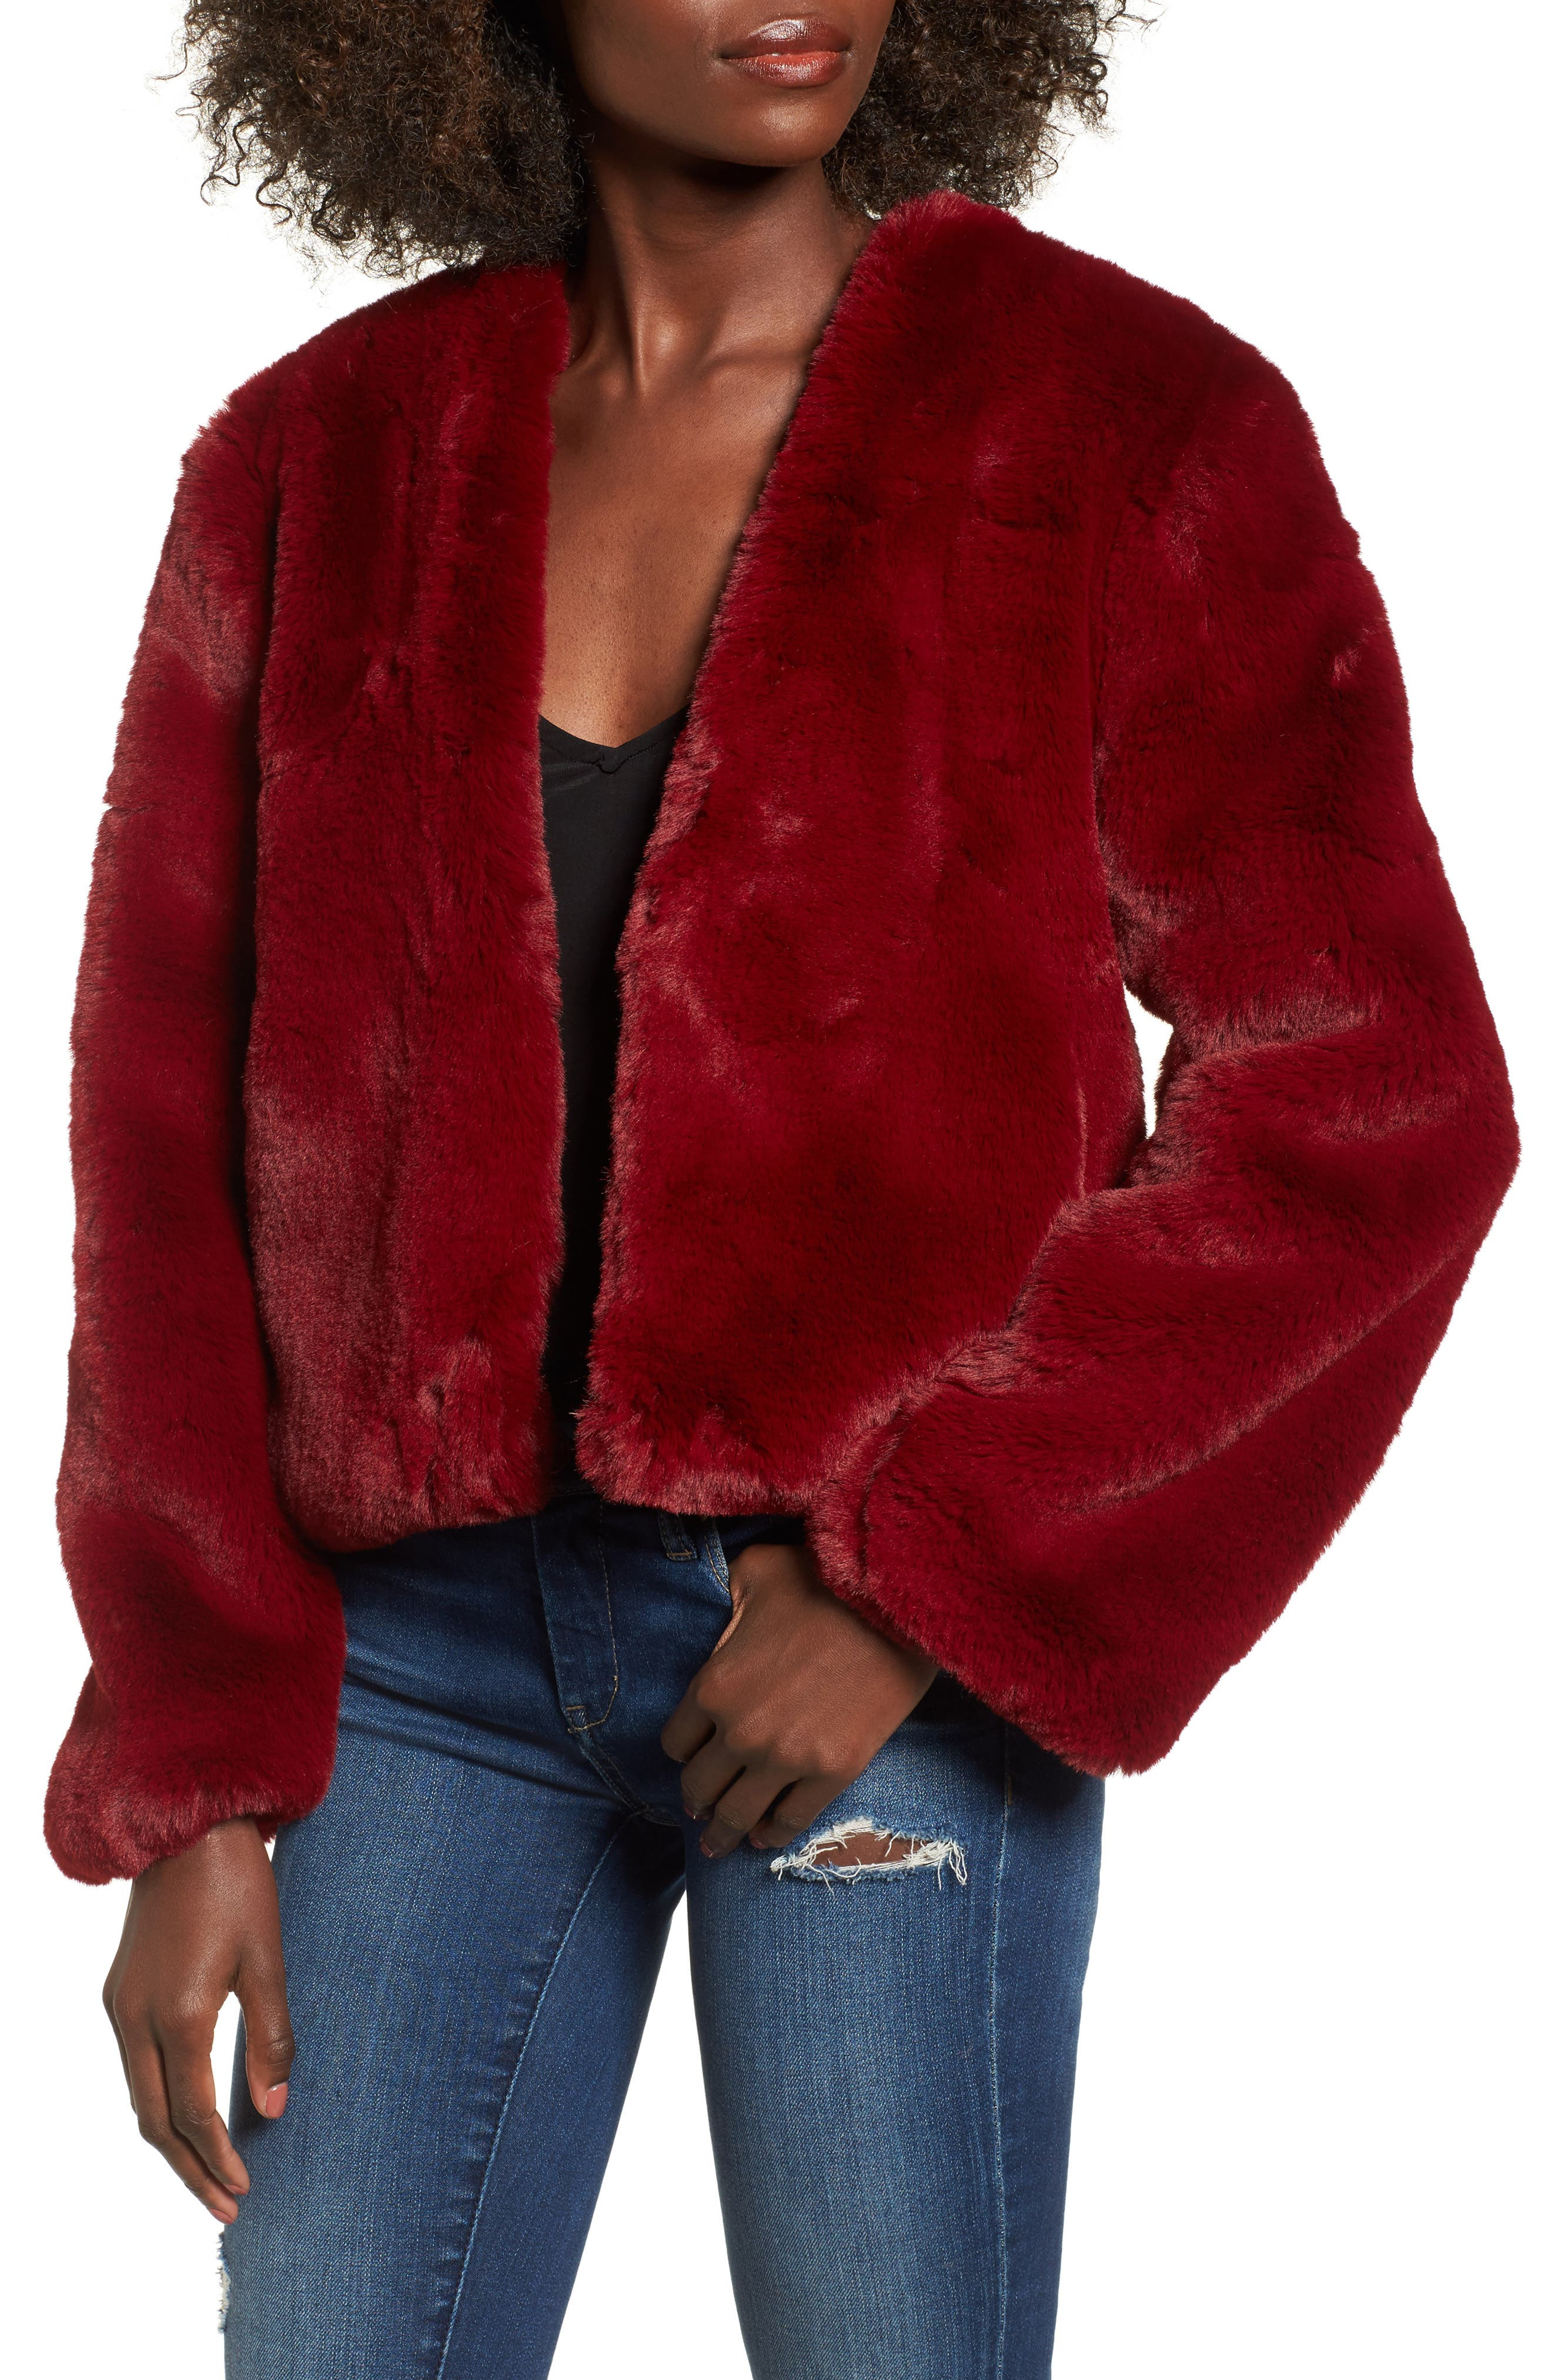 Somedays Lovin Lonely Hearts Faux Fur Jacket